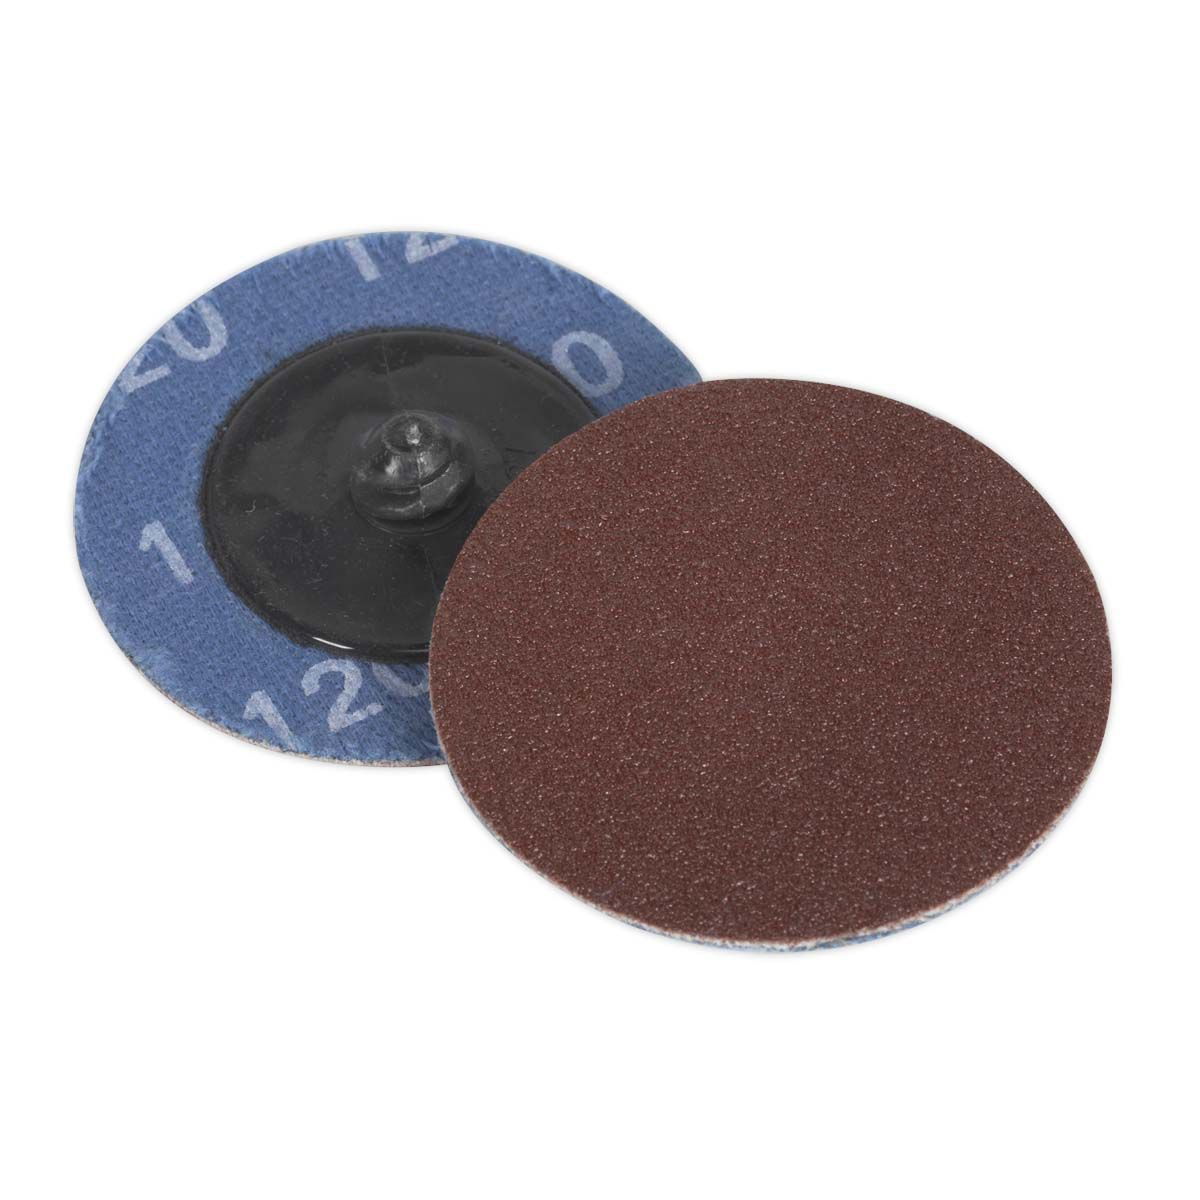 Sealey Quick-Change Sanding Disc Ø50mm 120Grit Pack of 10